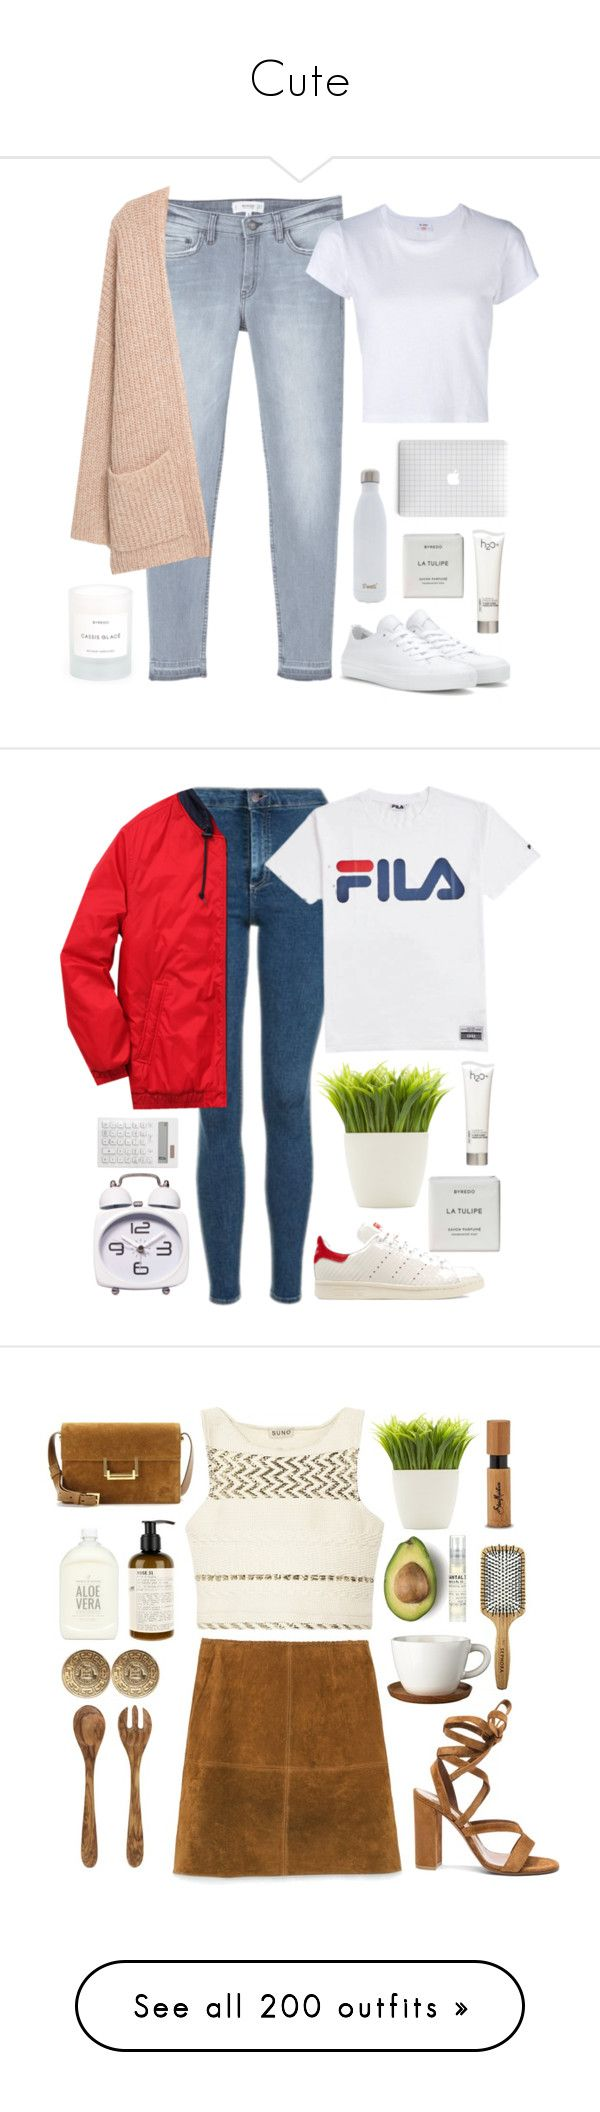 """Cute"" by zaraahh ❤ liked on Polyvore featuring MANGO, Converse, S'well, Byredo, H2O+, RE/DONE, Topshop, Fila, adidas Originals and Dot & Bo"